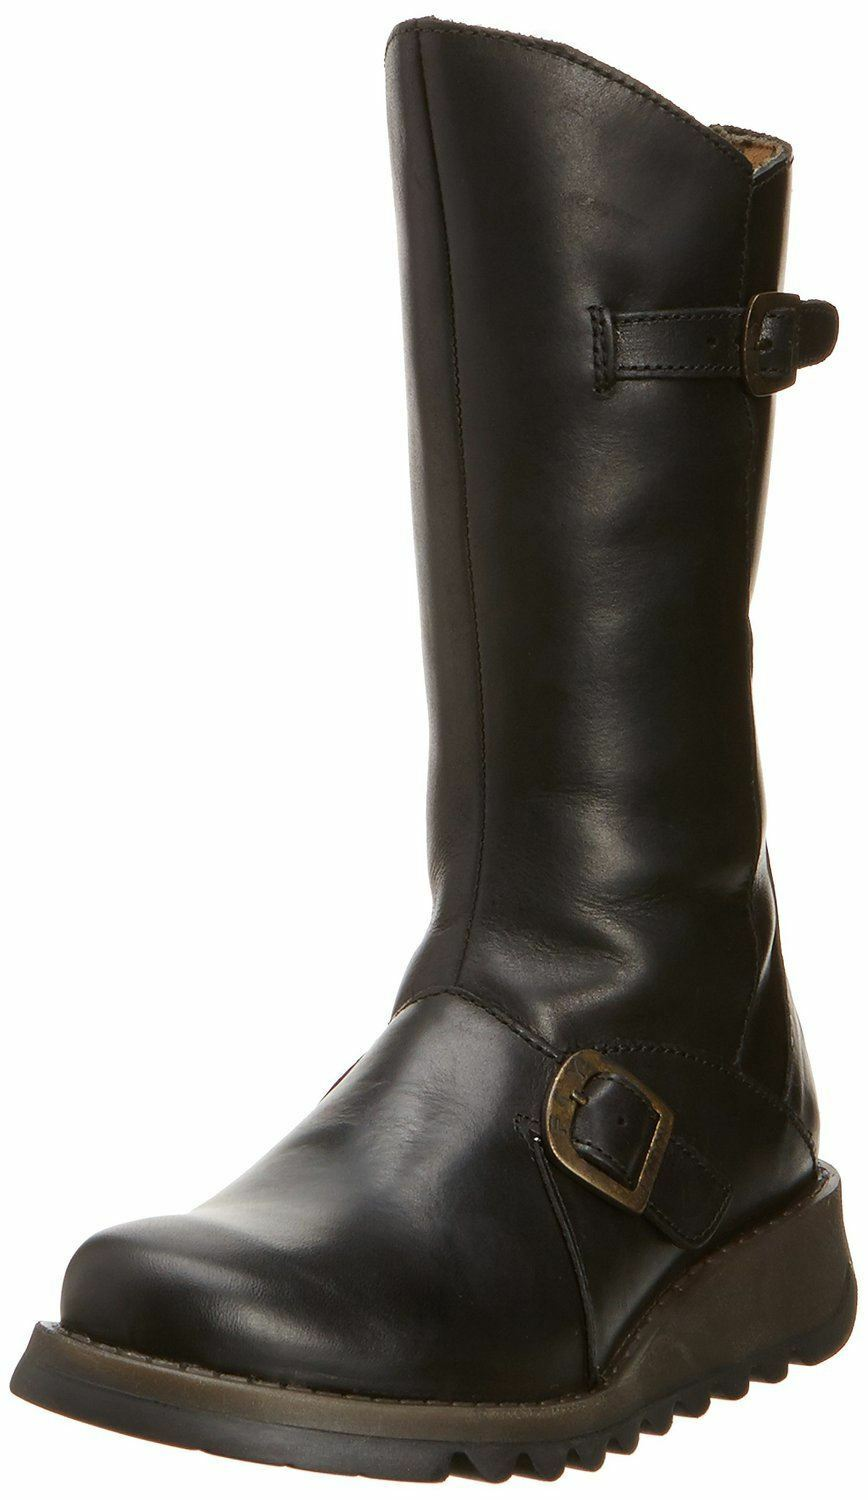 Fly london Mes 2 black Cuir women Mid Calf Bottes